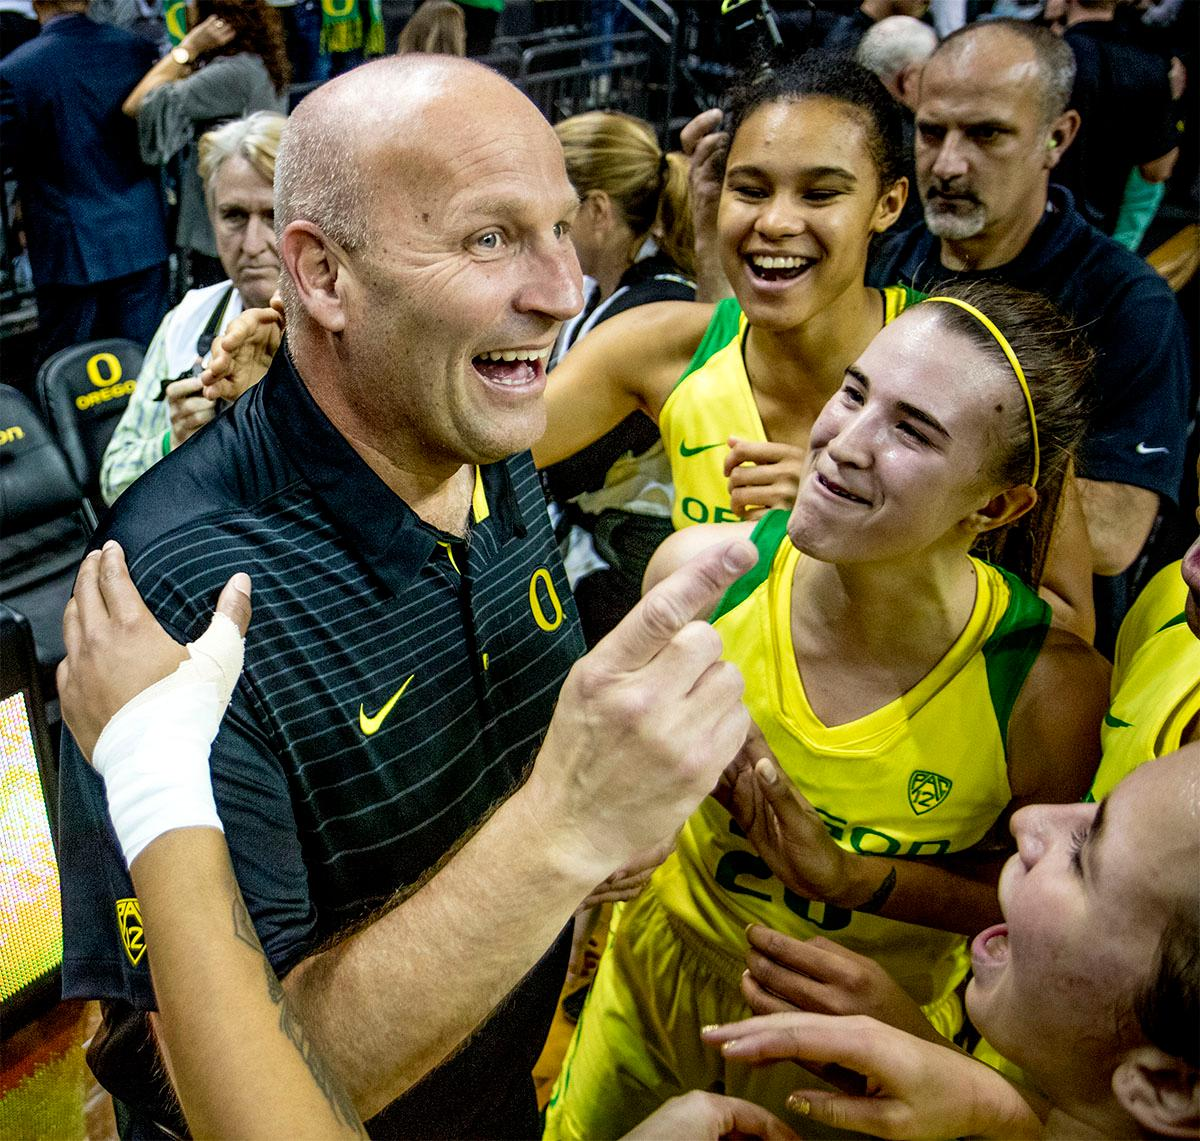 Ducks Head Coach Kelly Graves is congratulated on his 500th career win by his team. The Oregon Ducks defeated the Washington Huskies 94-83 on Sunday at Matthew Knight Arena. Sabrina Ionescu also set the new NCAA all time record of 8 triple doubles in just 48 games. The previous record was 7 triple doubles in 124 games, held by Susie McConnell at Penn State. The Ducks will next face off against USC on Friday January 5th in Los Angeles. Photo by Rhianna Gelhart, Oregon News Lab